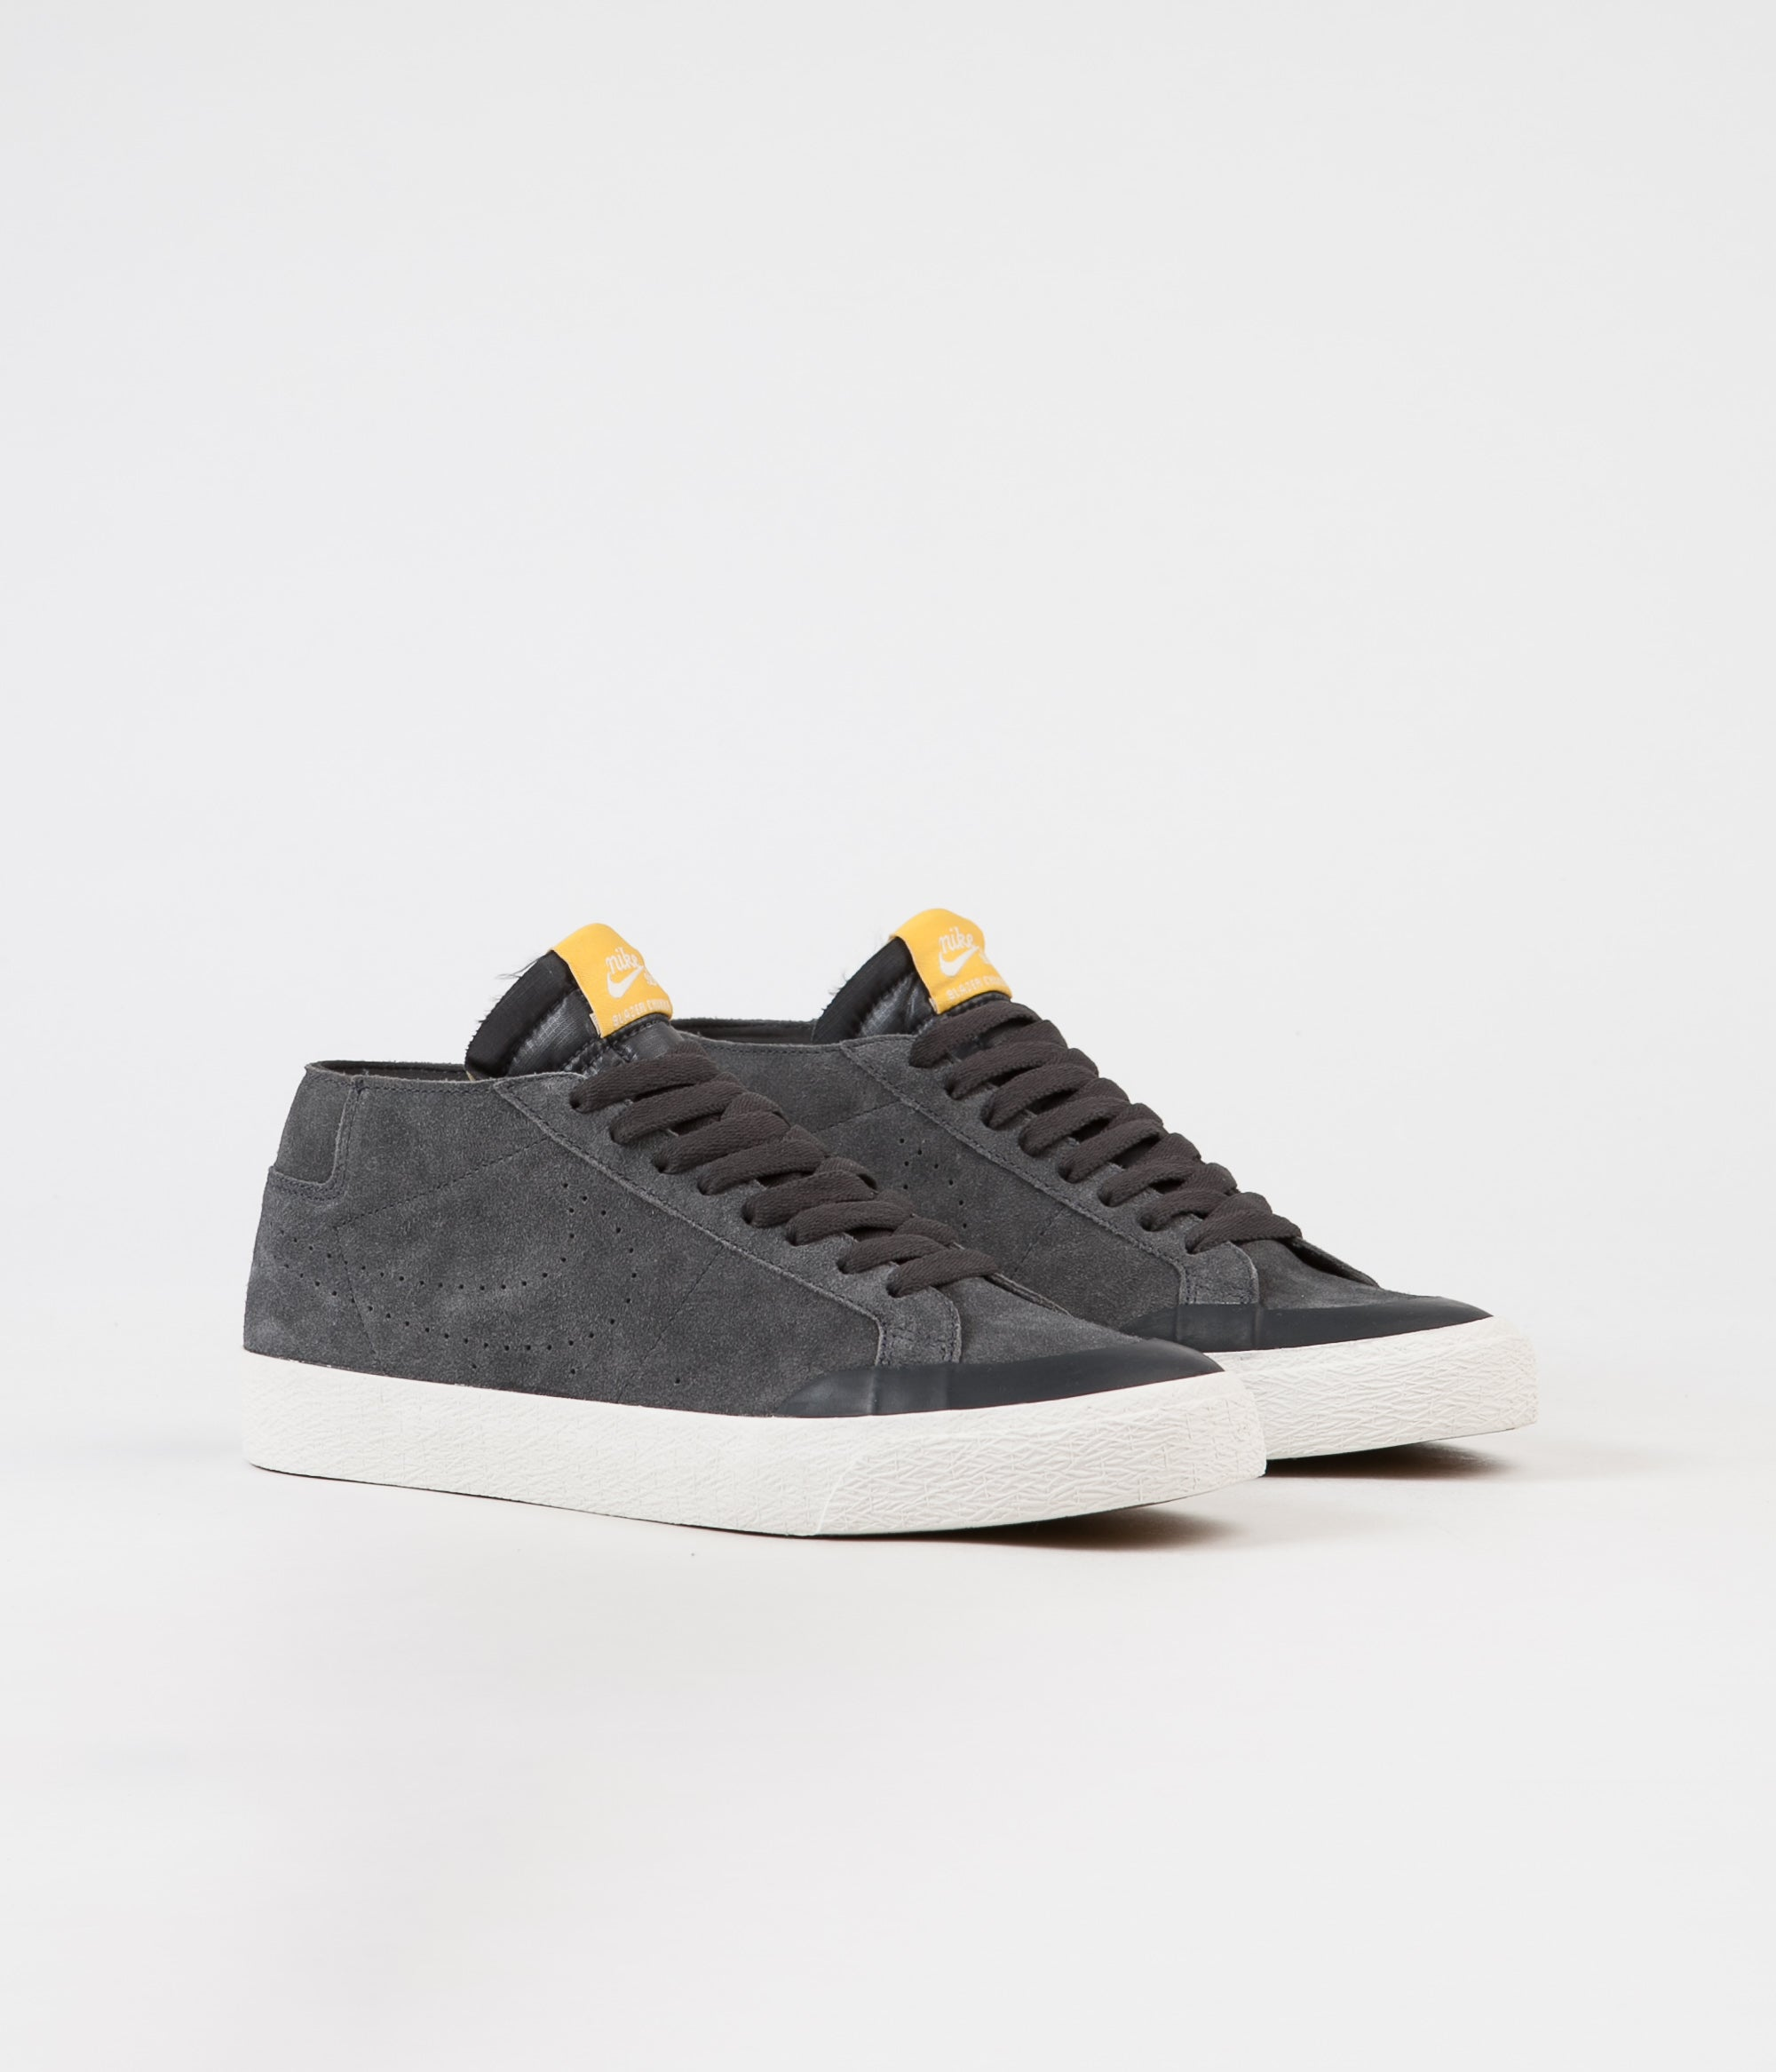 the best attitude a557d d68f5 Nike SB Blazer Chukka XT Shoes - Anthracite / Anthracite ...